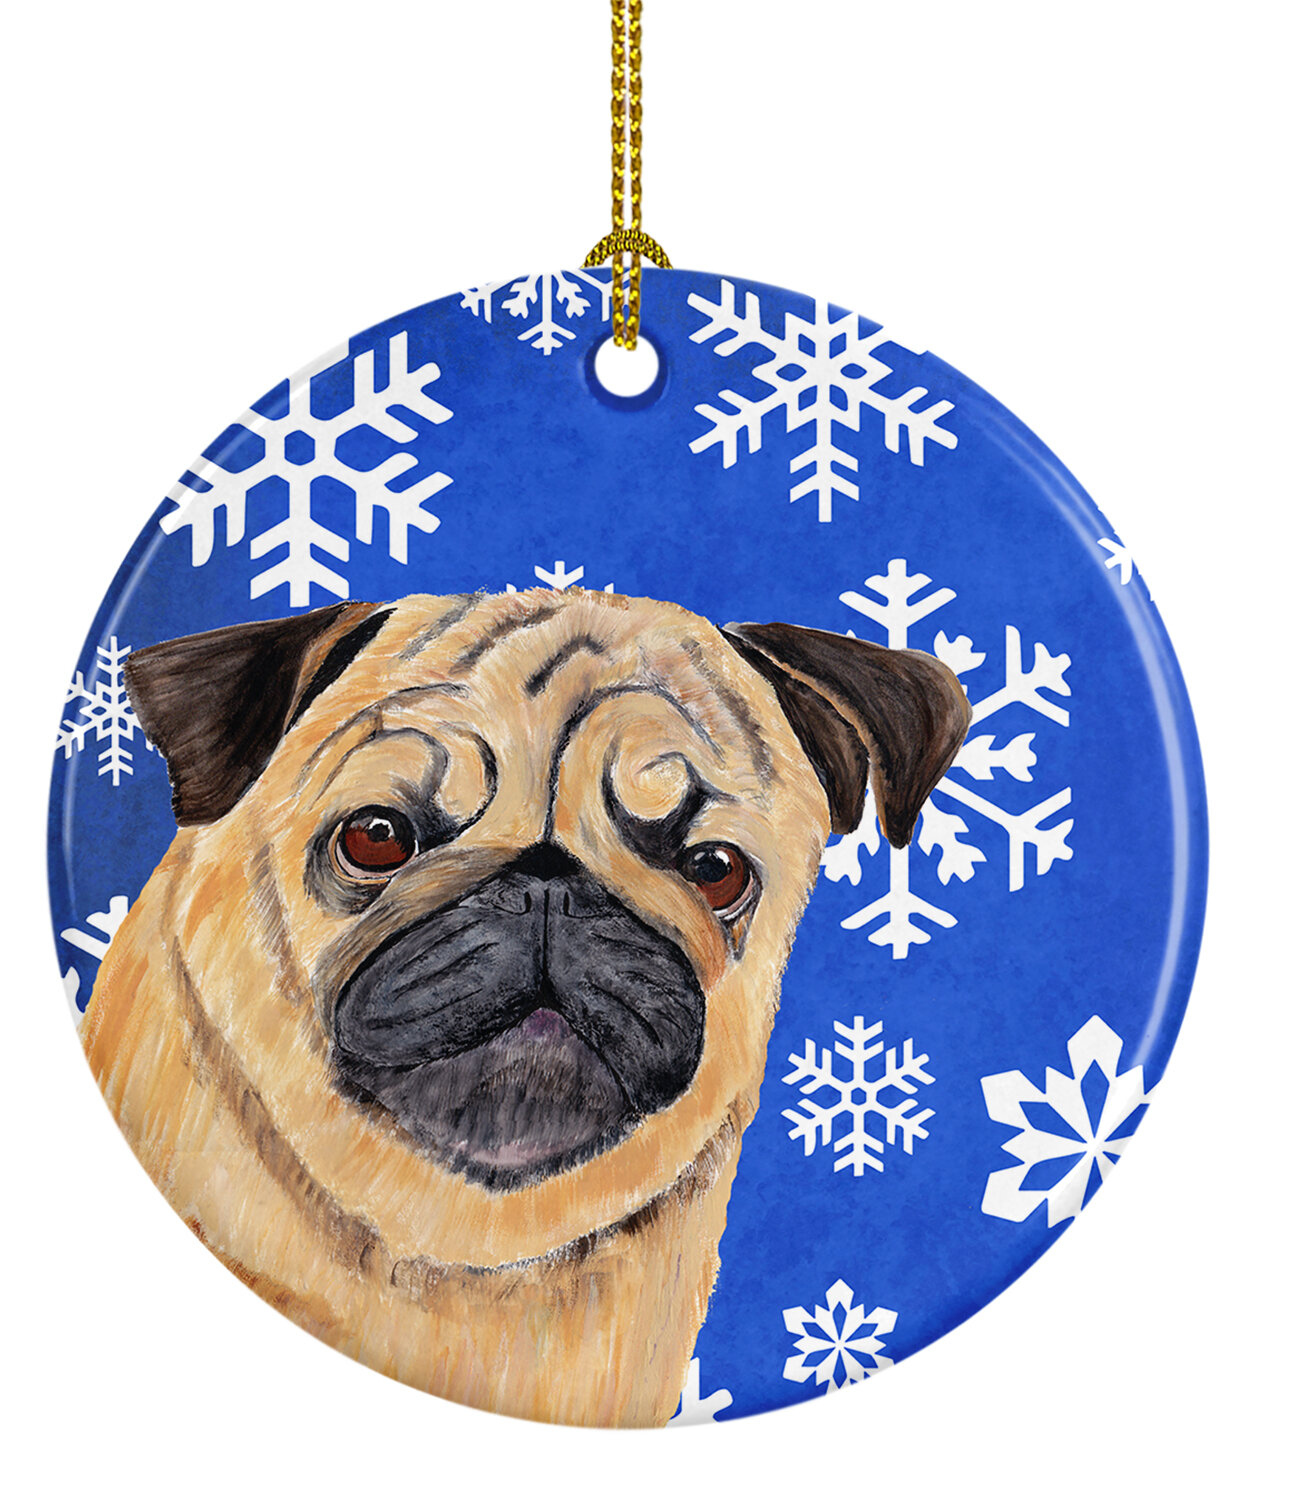 The Holiday Aisle Pug Winter Snowflakes Holiday Ceramic Hanging Figurine Ornament Wayfair